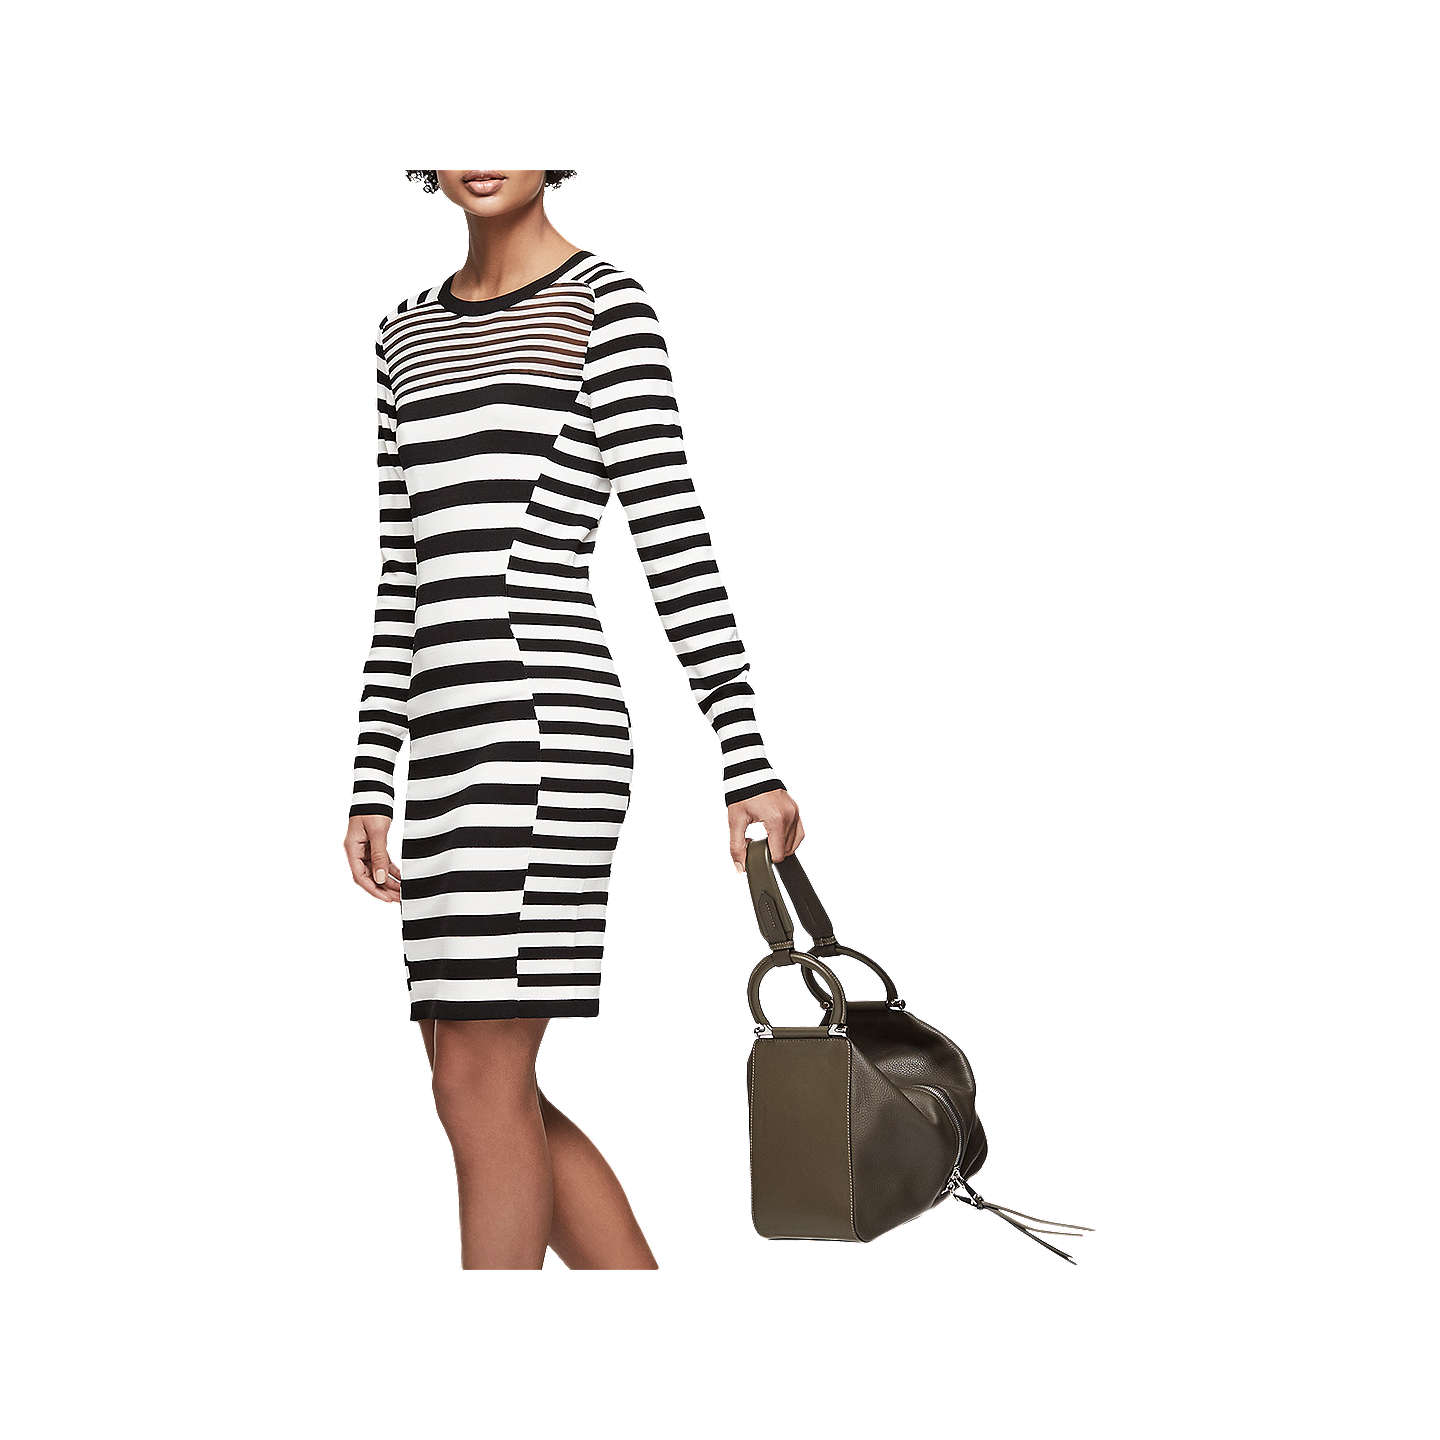 Reiss Jolie Stripe Dress, Black/White by Reiss